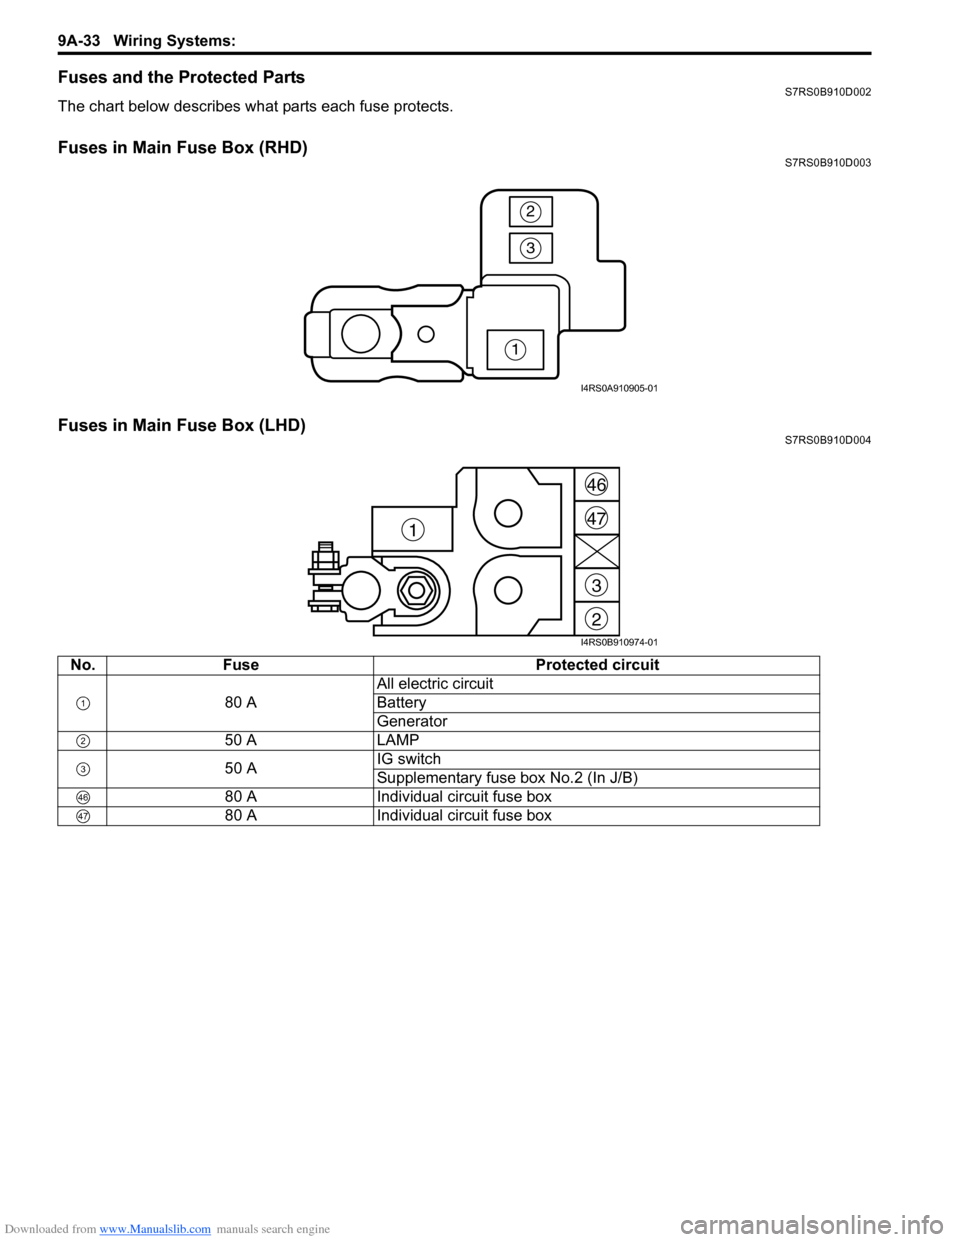 SUZUKI SWIFT 2005 2.G Service Workshop Manual, Page 1204